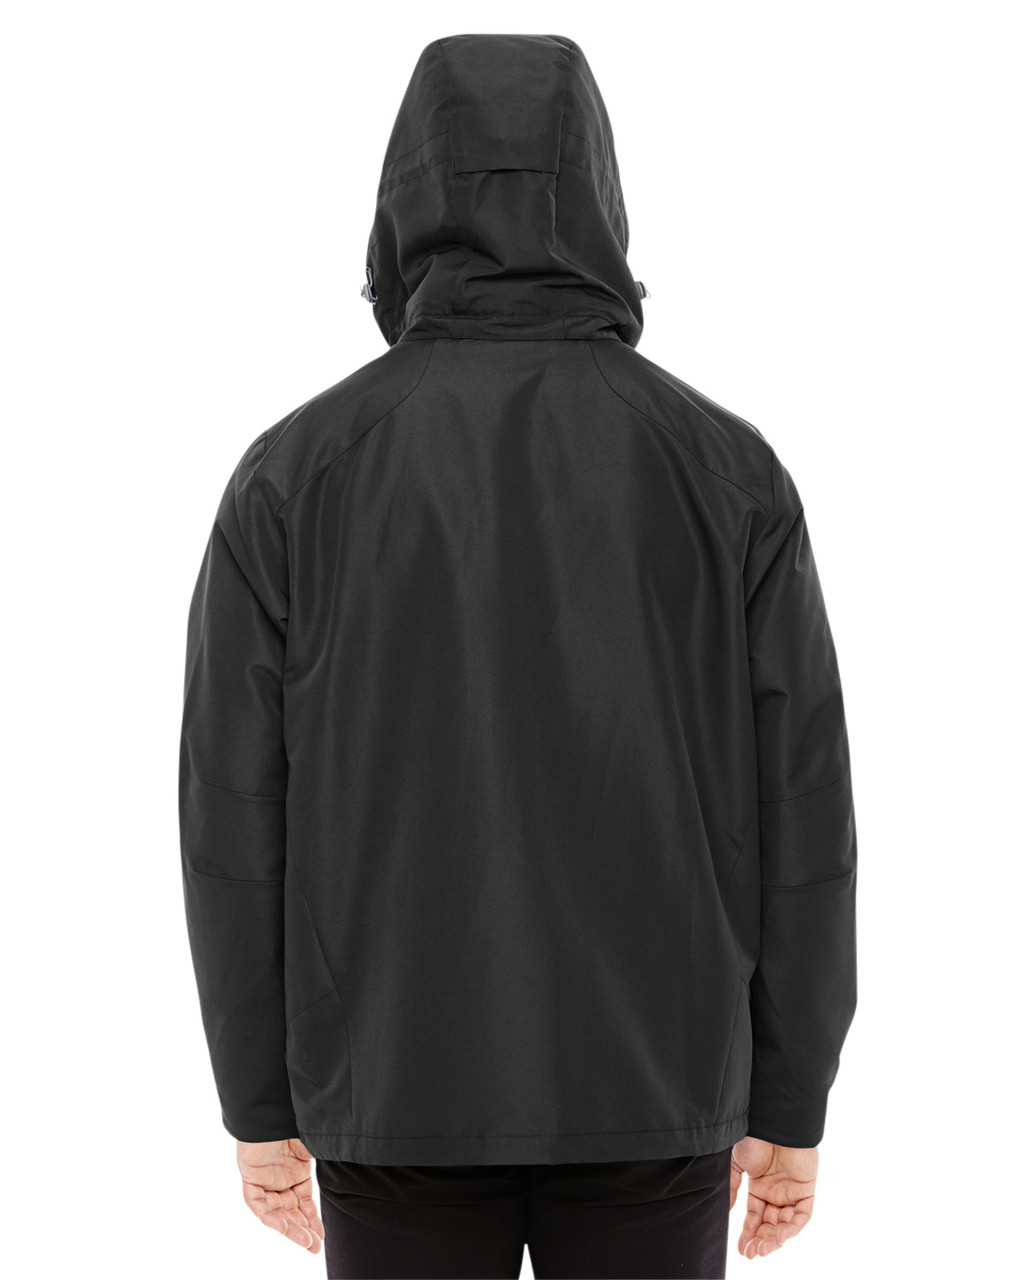 Black/Graphite-back 88226 North End Men's Insight Interactive Shell Jacket | Blankclothing.ca